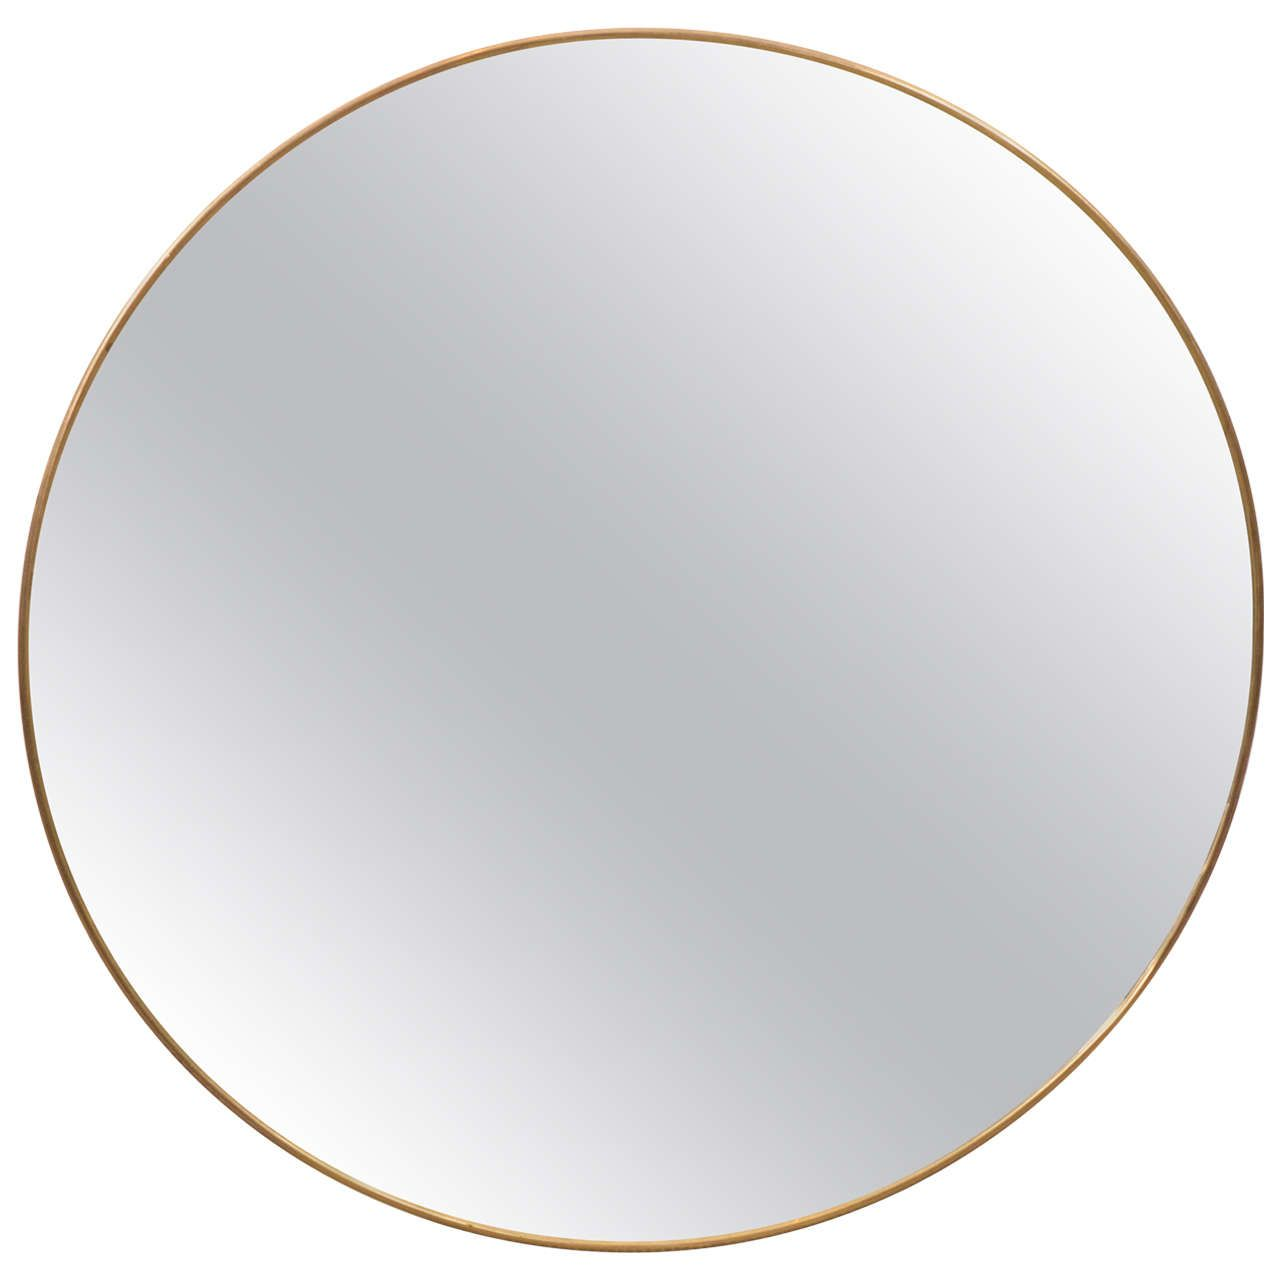 italian modernist brass framed round mirror s  from a uniquecollection of antique and. italian modernist brass framed round mirror s  from a unique